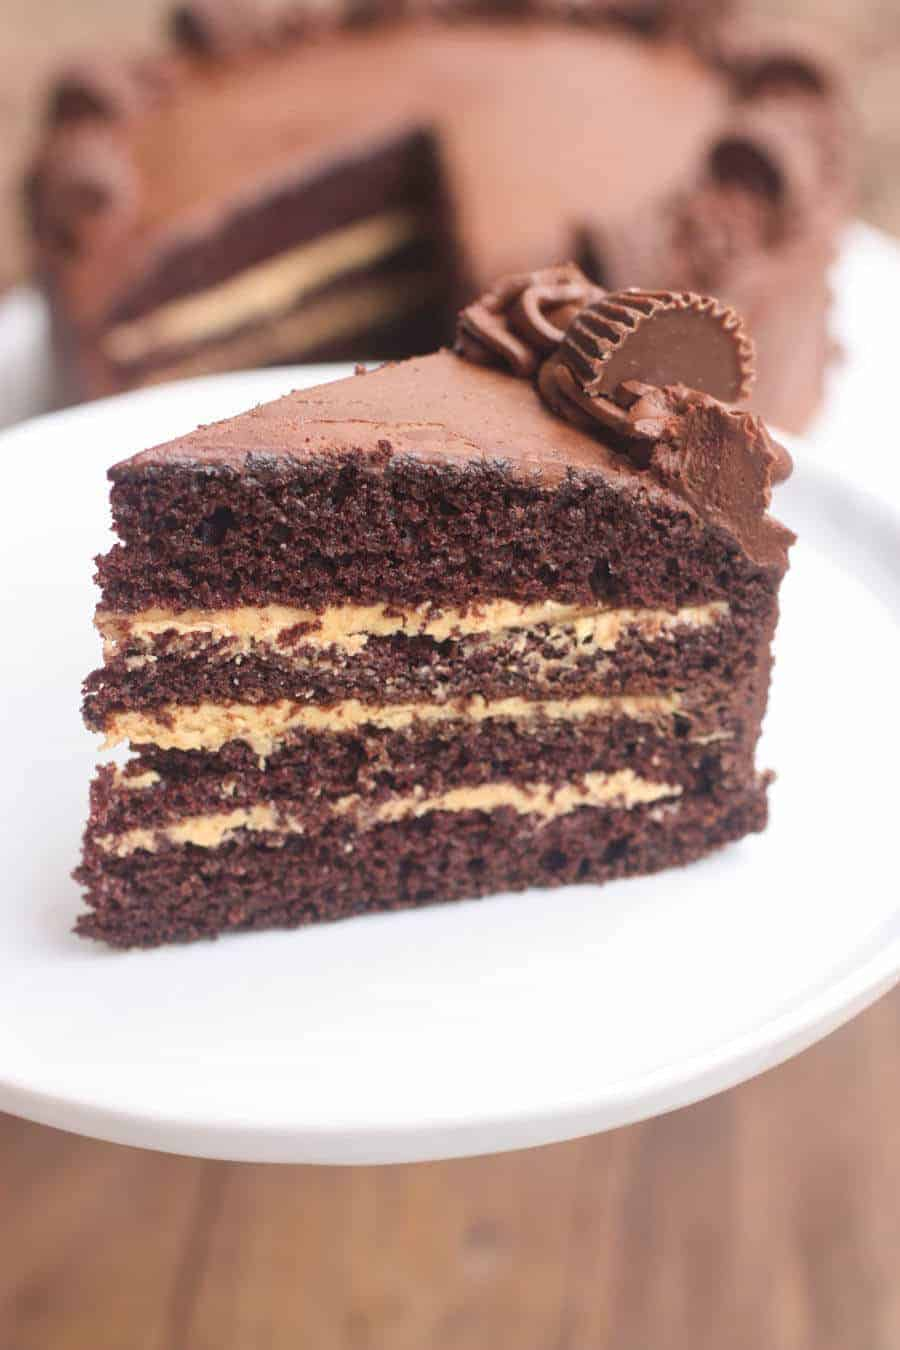 Chocolate_Peanut_Butter_Cake-3